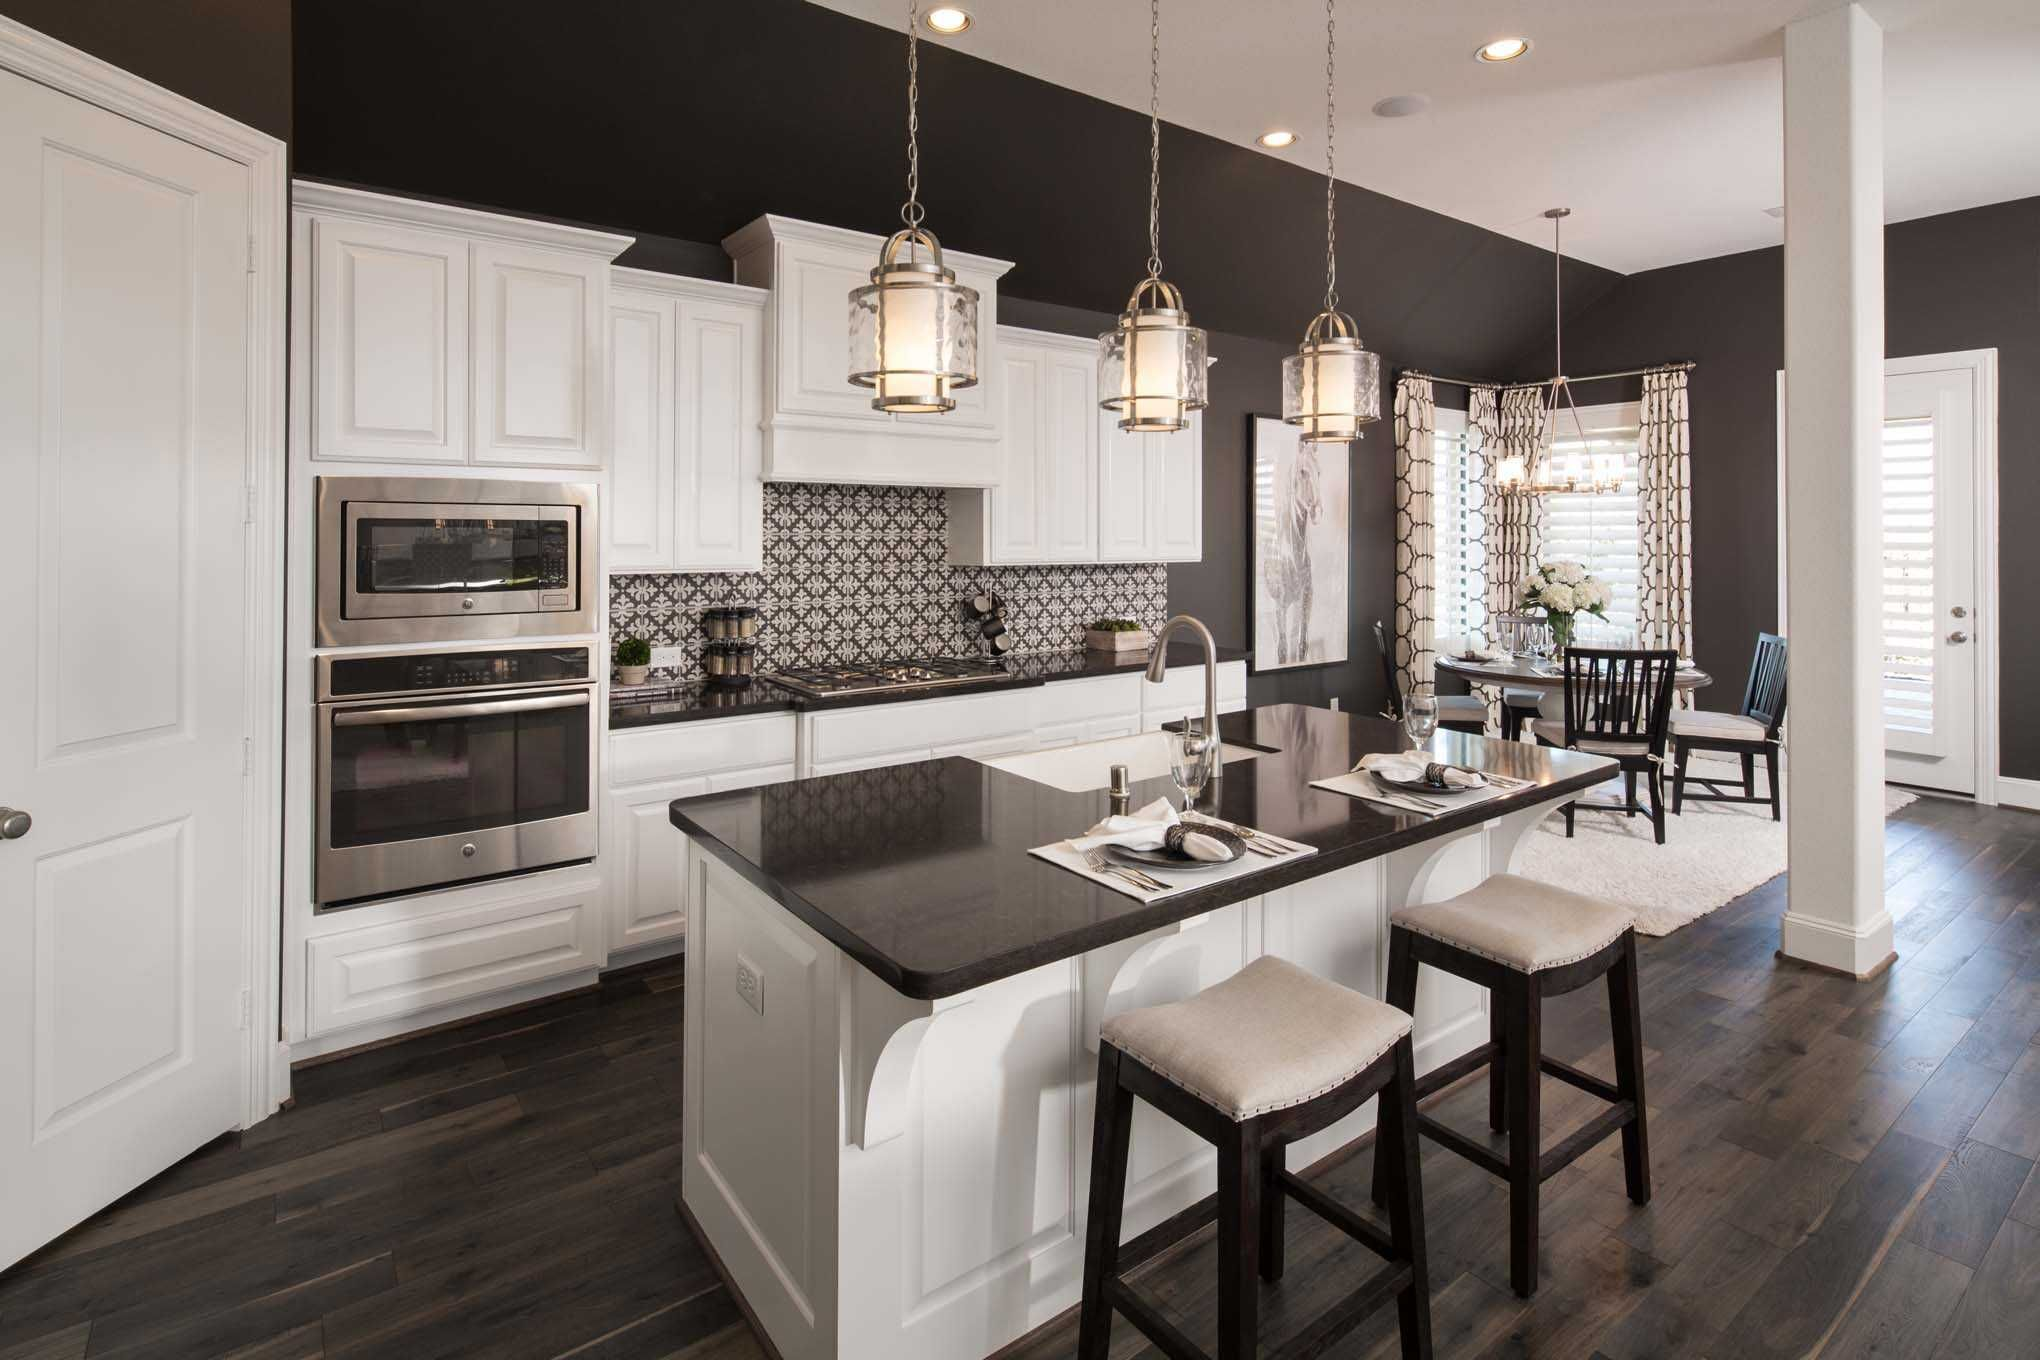 Kitchen Design Houston Endearing Highland Homes Plan 204 Model Home In Houston Texas Elyson 65S Decorating Inspiration